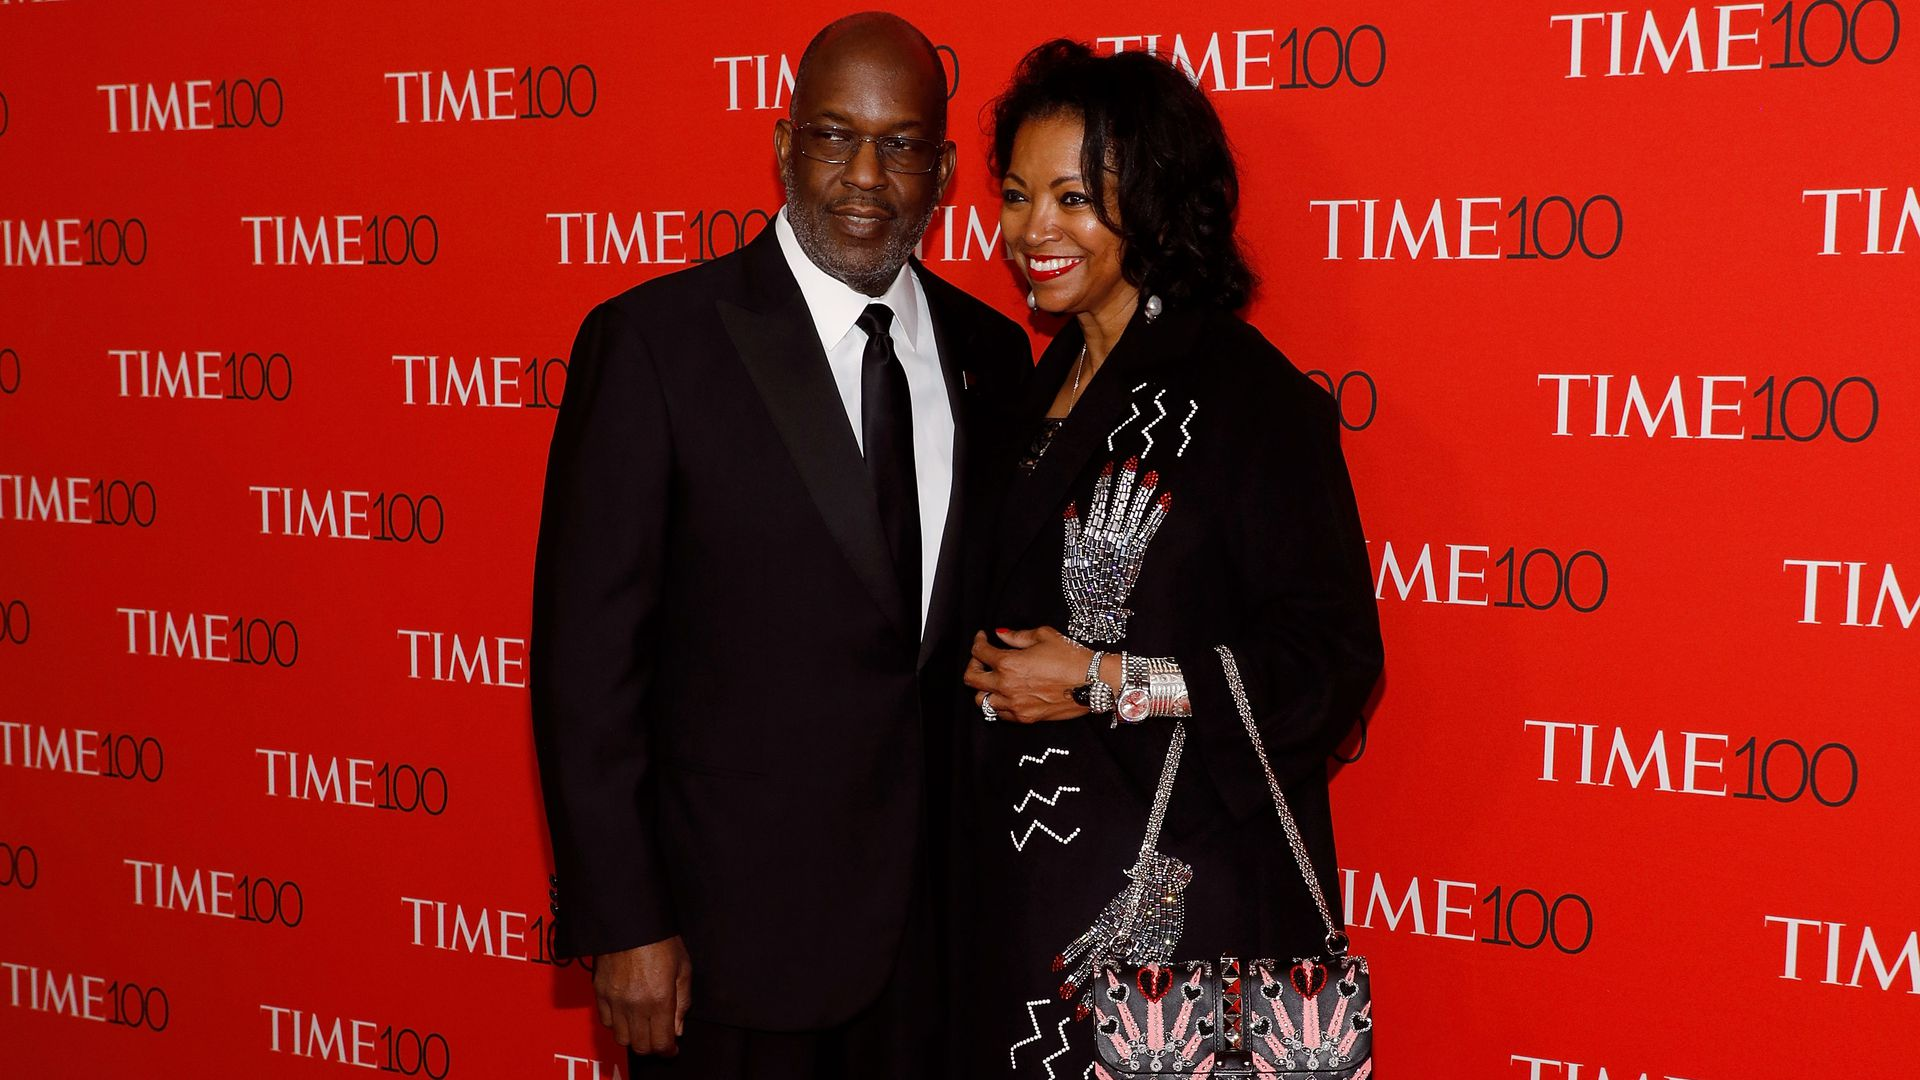 Kaiser Permanente CEO and Chairman Bernard J. Tyson with Denise Bradley-Tyson, his wife.